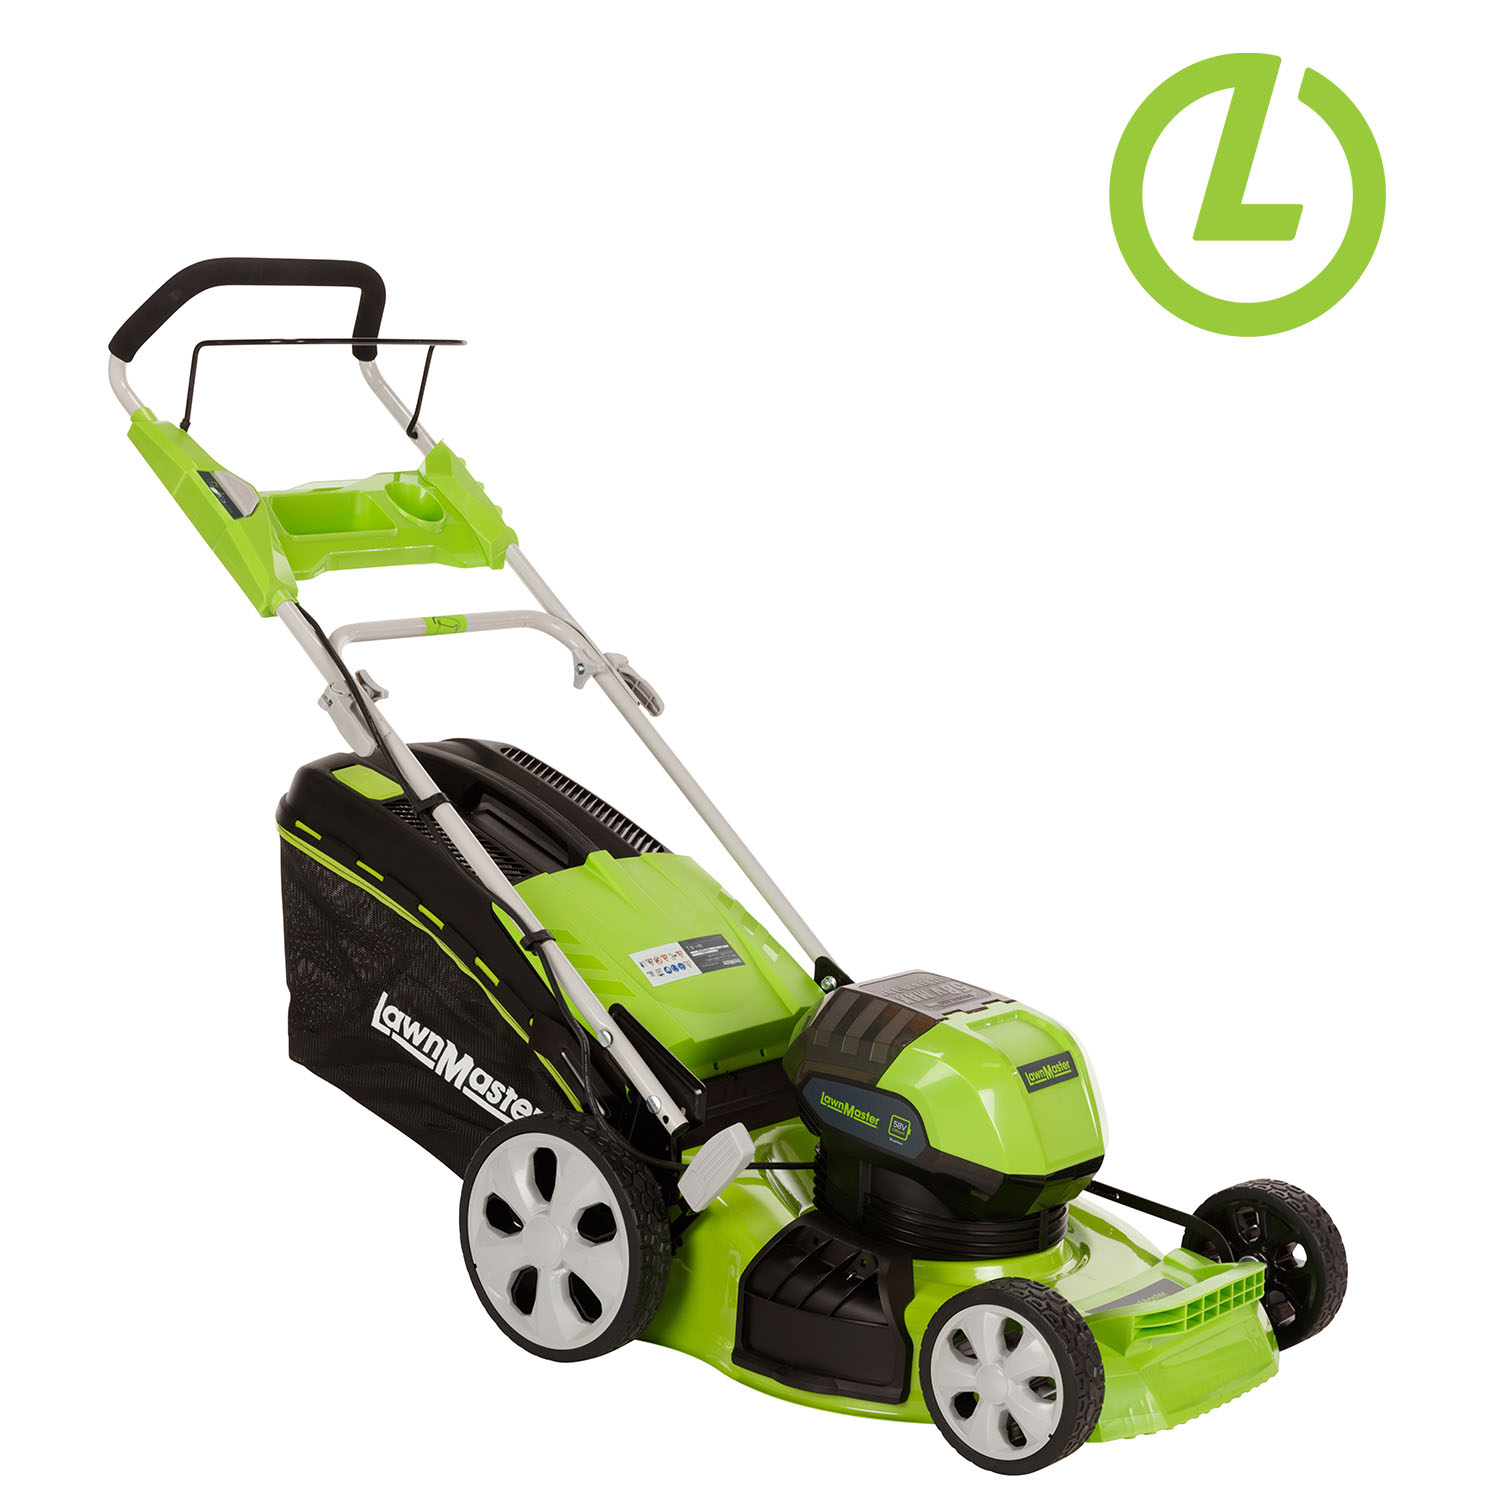 Lawnmaster Battery Mowers - Lithium - Ion battery mowers require no petrol or oil. They are lighter than conventional mowers and now have a mow time of around 40 minutes